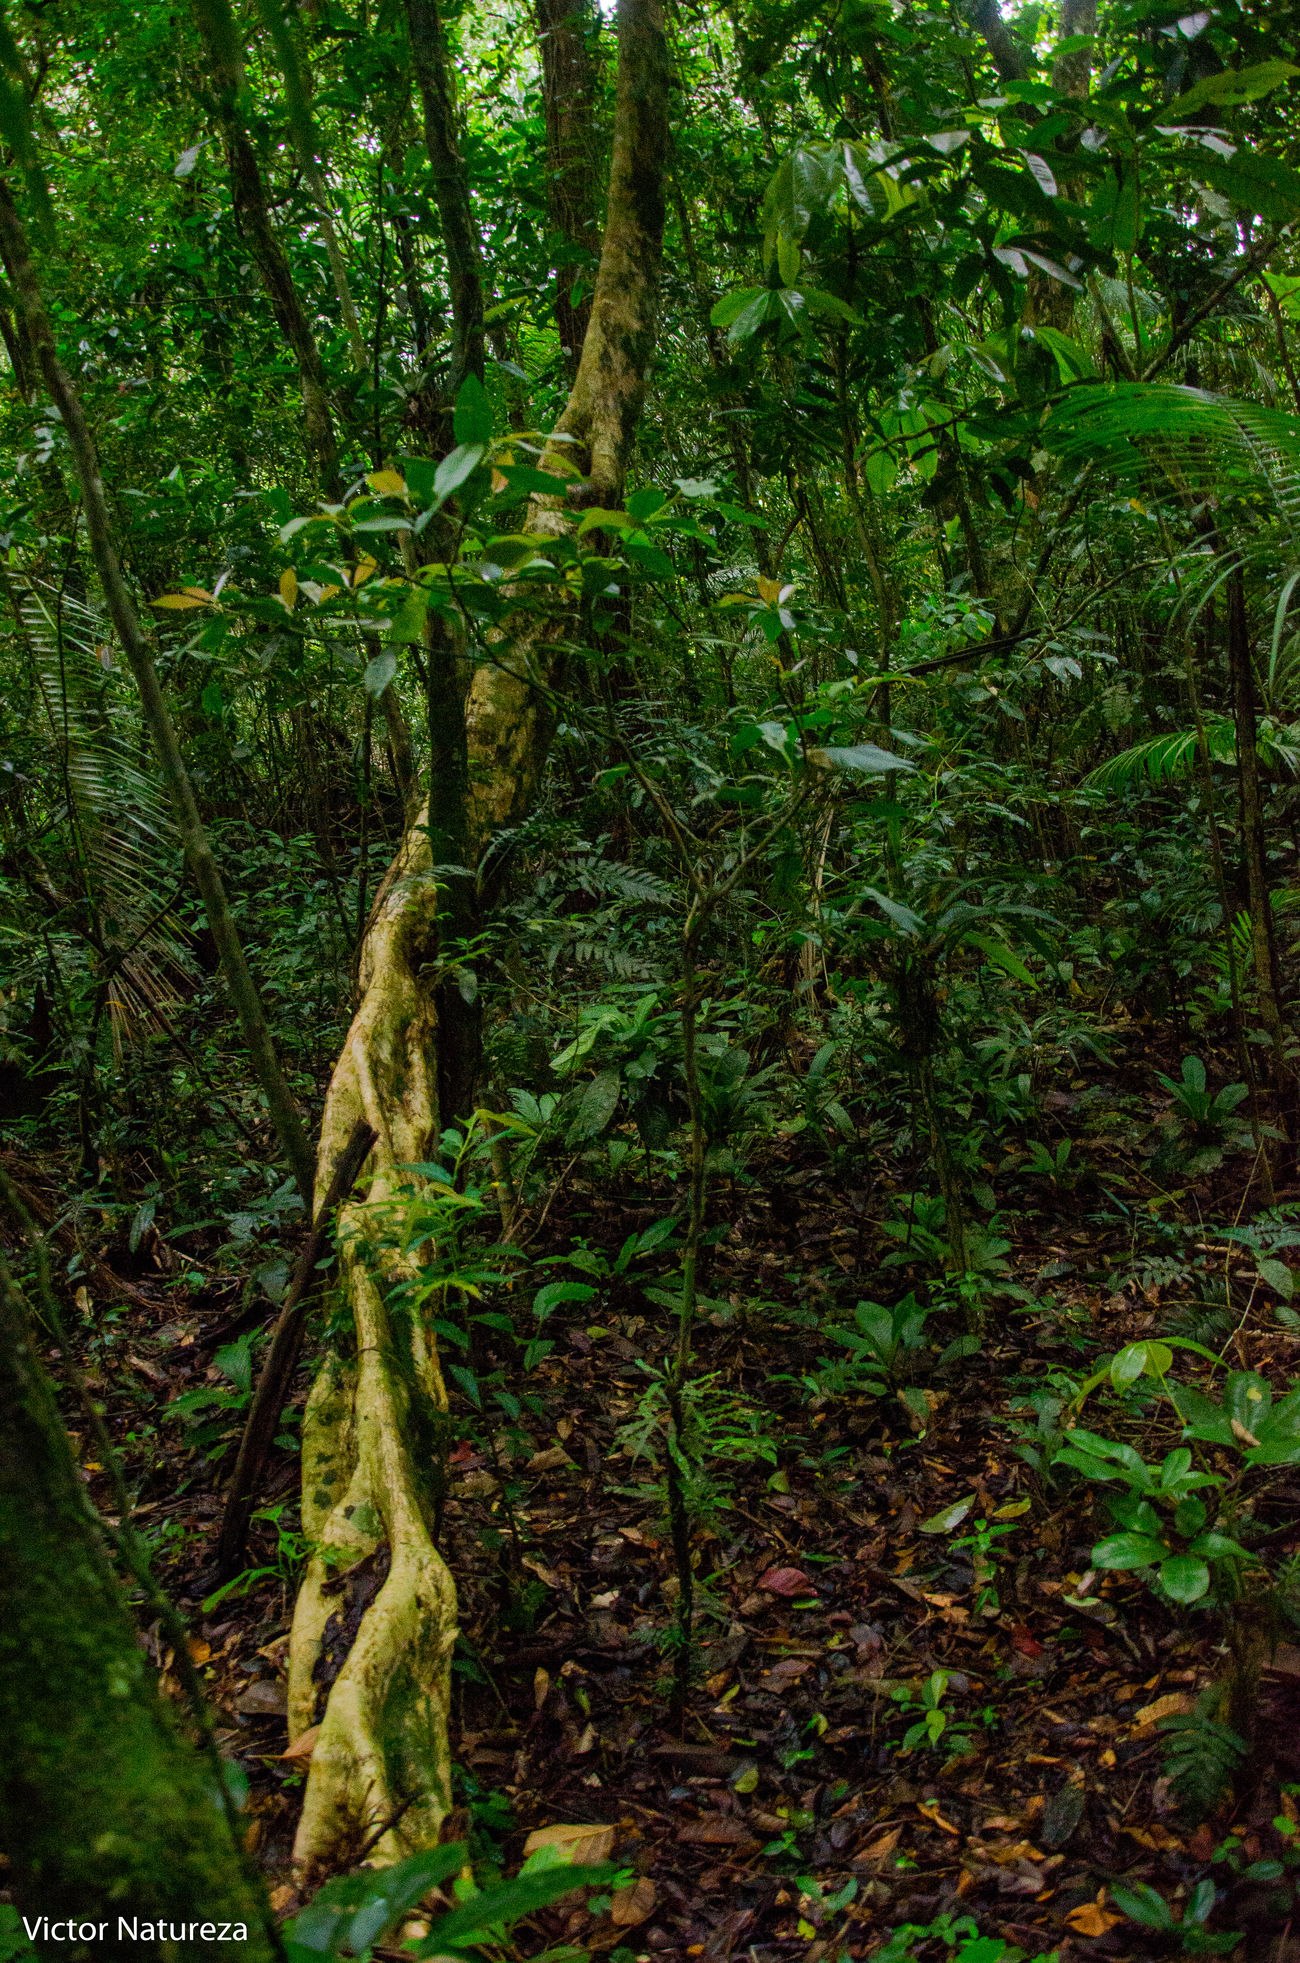 Green Color Tree Nature Documentary Fotodocumental Documentaryphotography Vitaonatureza Victornatureza Artefotografia Fotografiaautoral Brasil Travel Destinations Paraty Textura Brazil Animal Themes Beauty In Nature Green Color Animals In The Wild